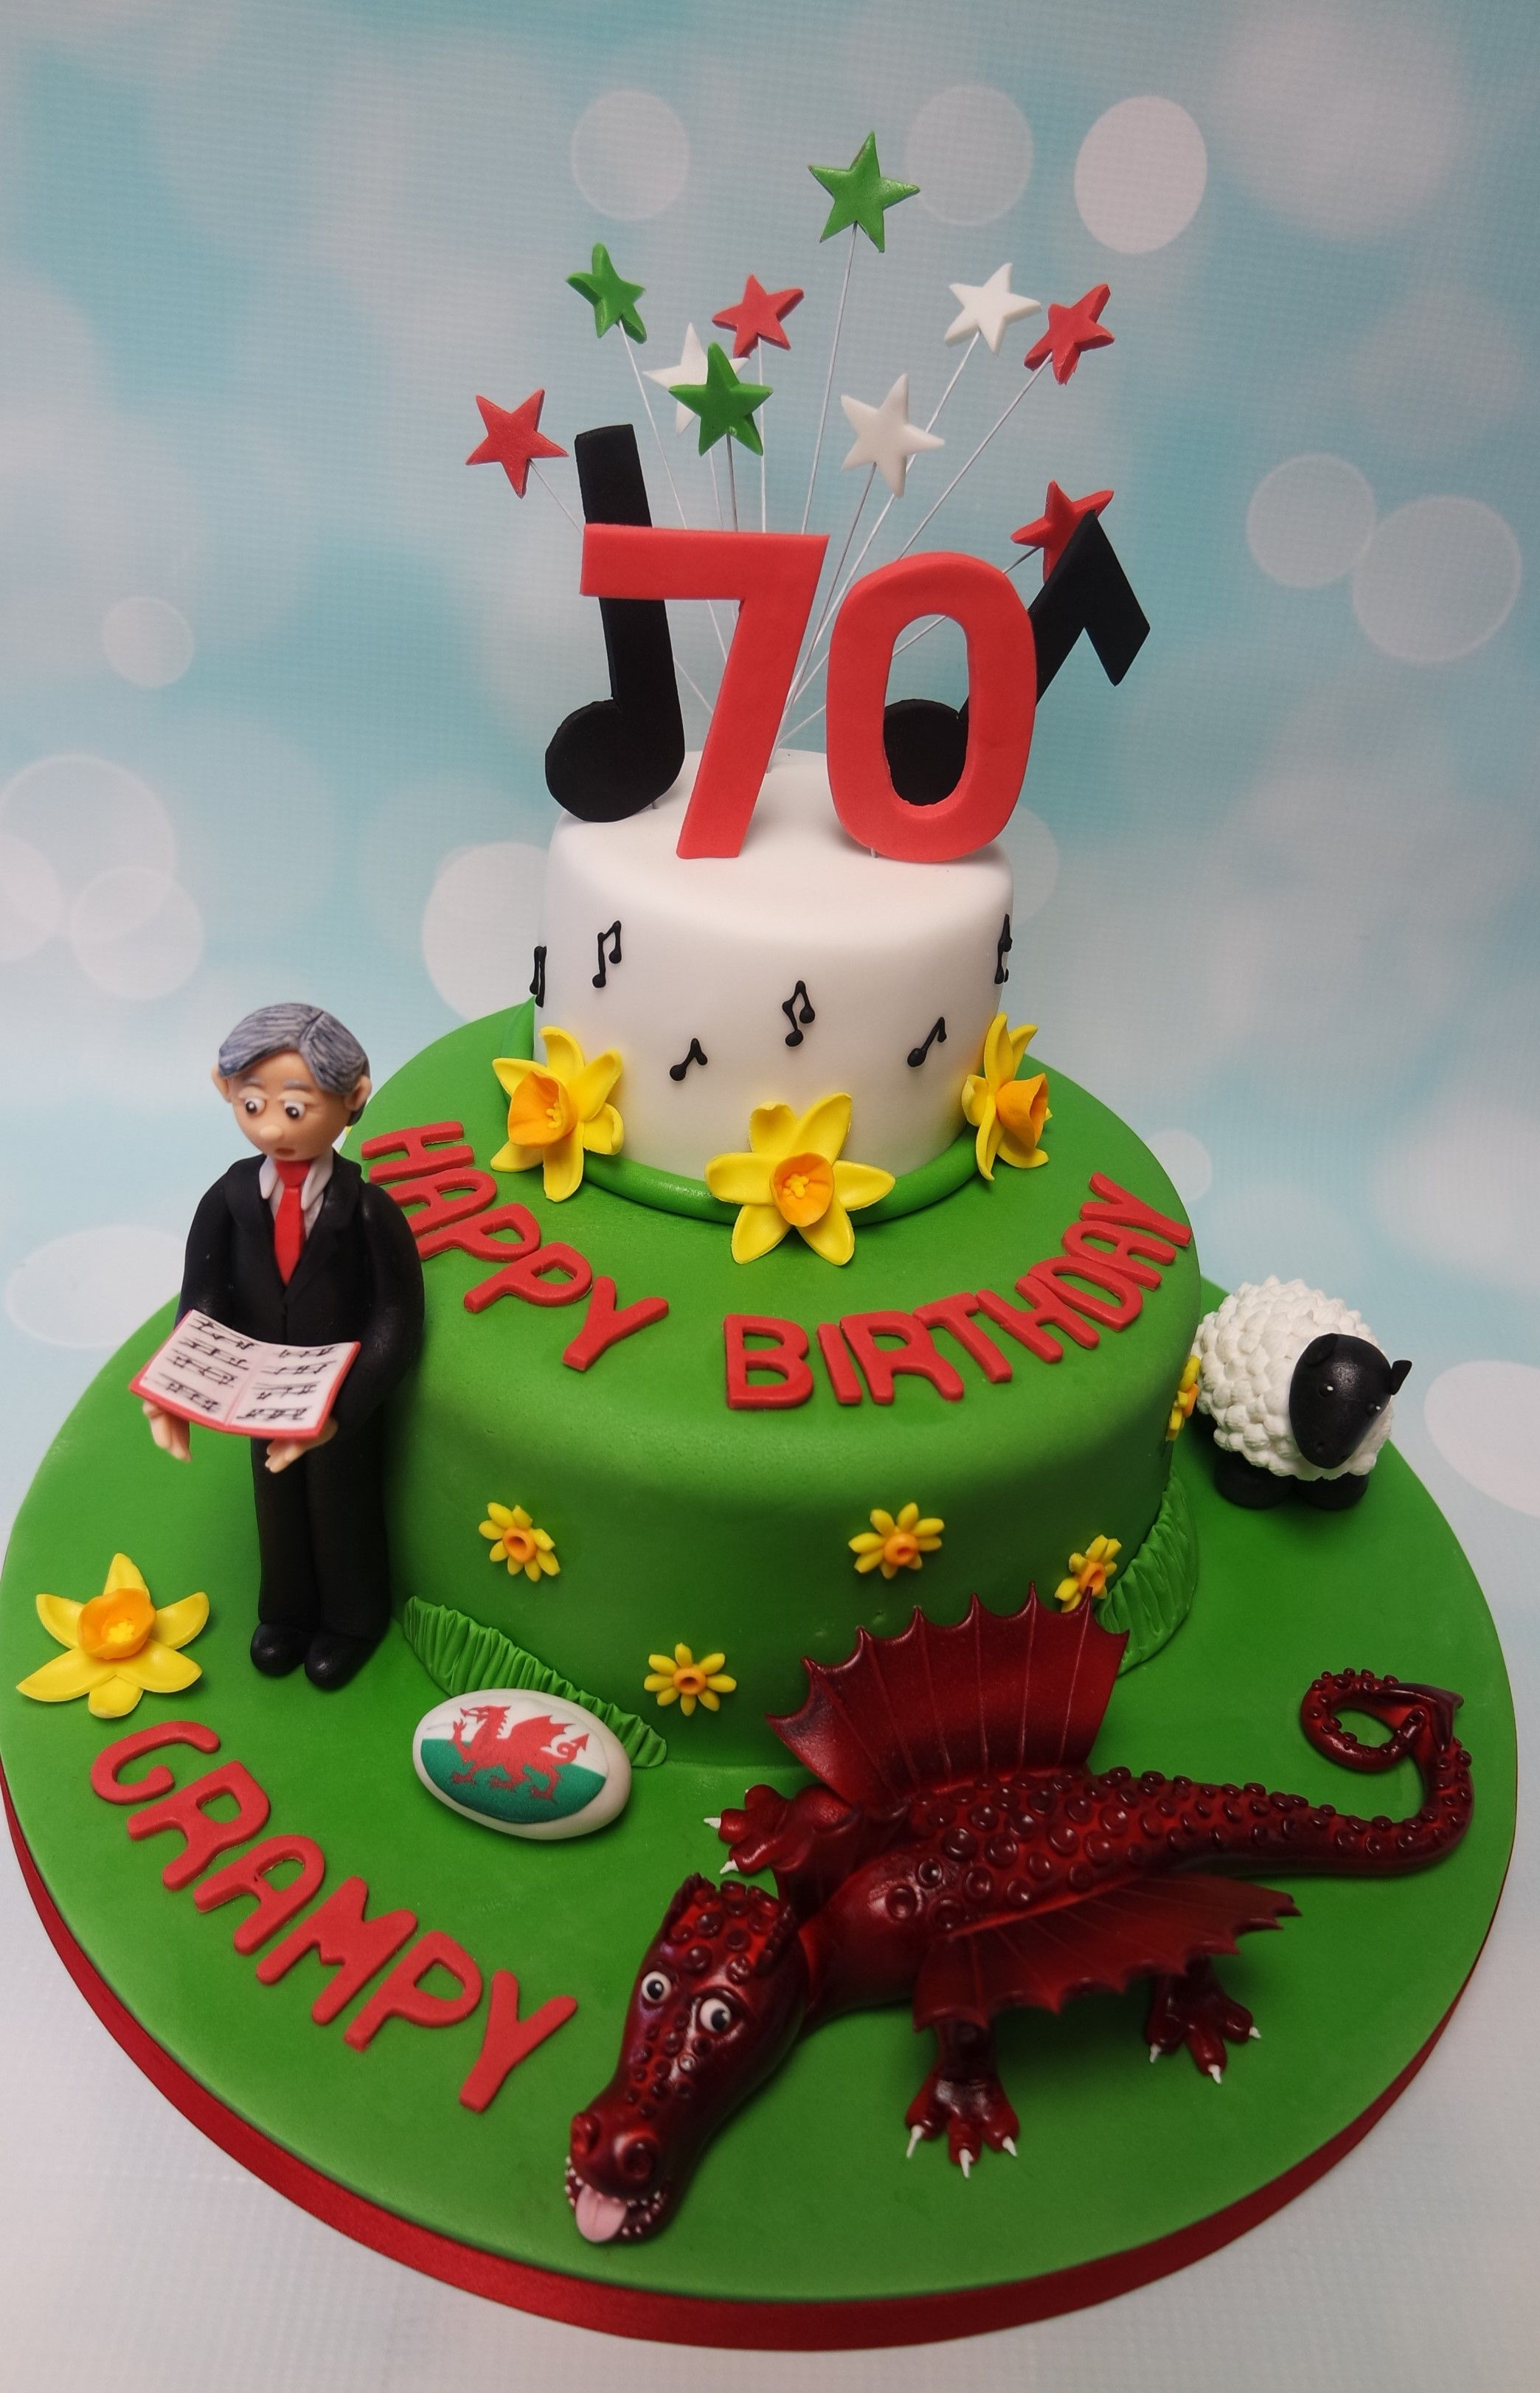 Lots of elements to this welsh themed 70th birthday cake love it lots of elements to this welsh themed 70th birthday cake love it publicscrutiny Image collections